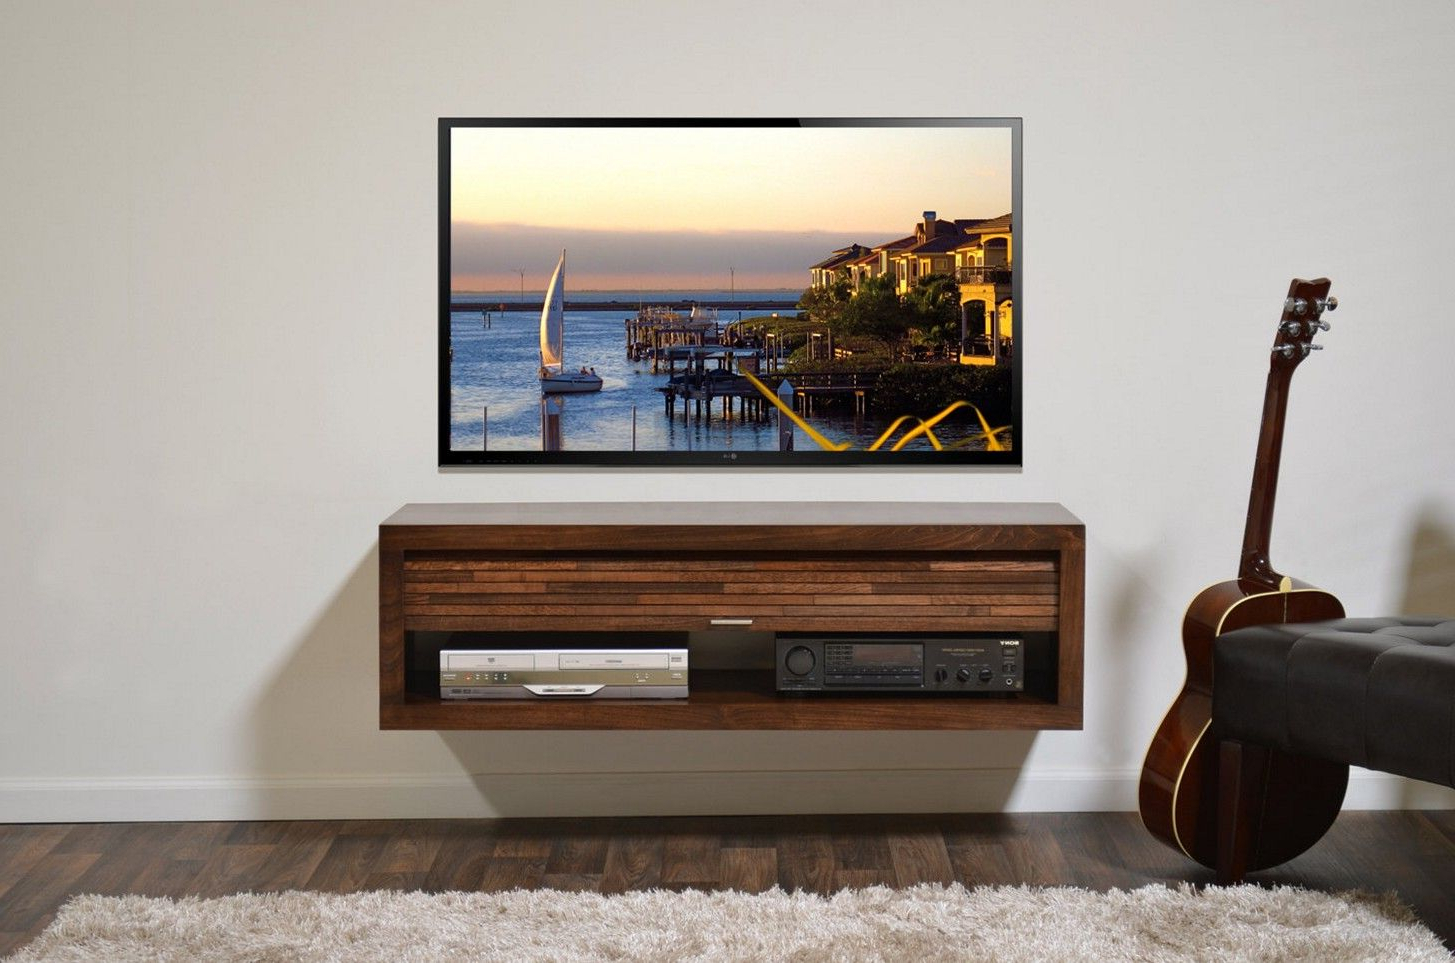 Diy Tv Stand Endless Choices For Your Room Interior Within Popular Alden Design Wooden Tv Stands With Storage Cabinet Espresso (View 7 of 10)